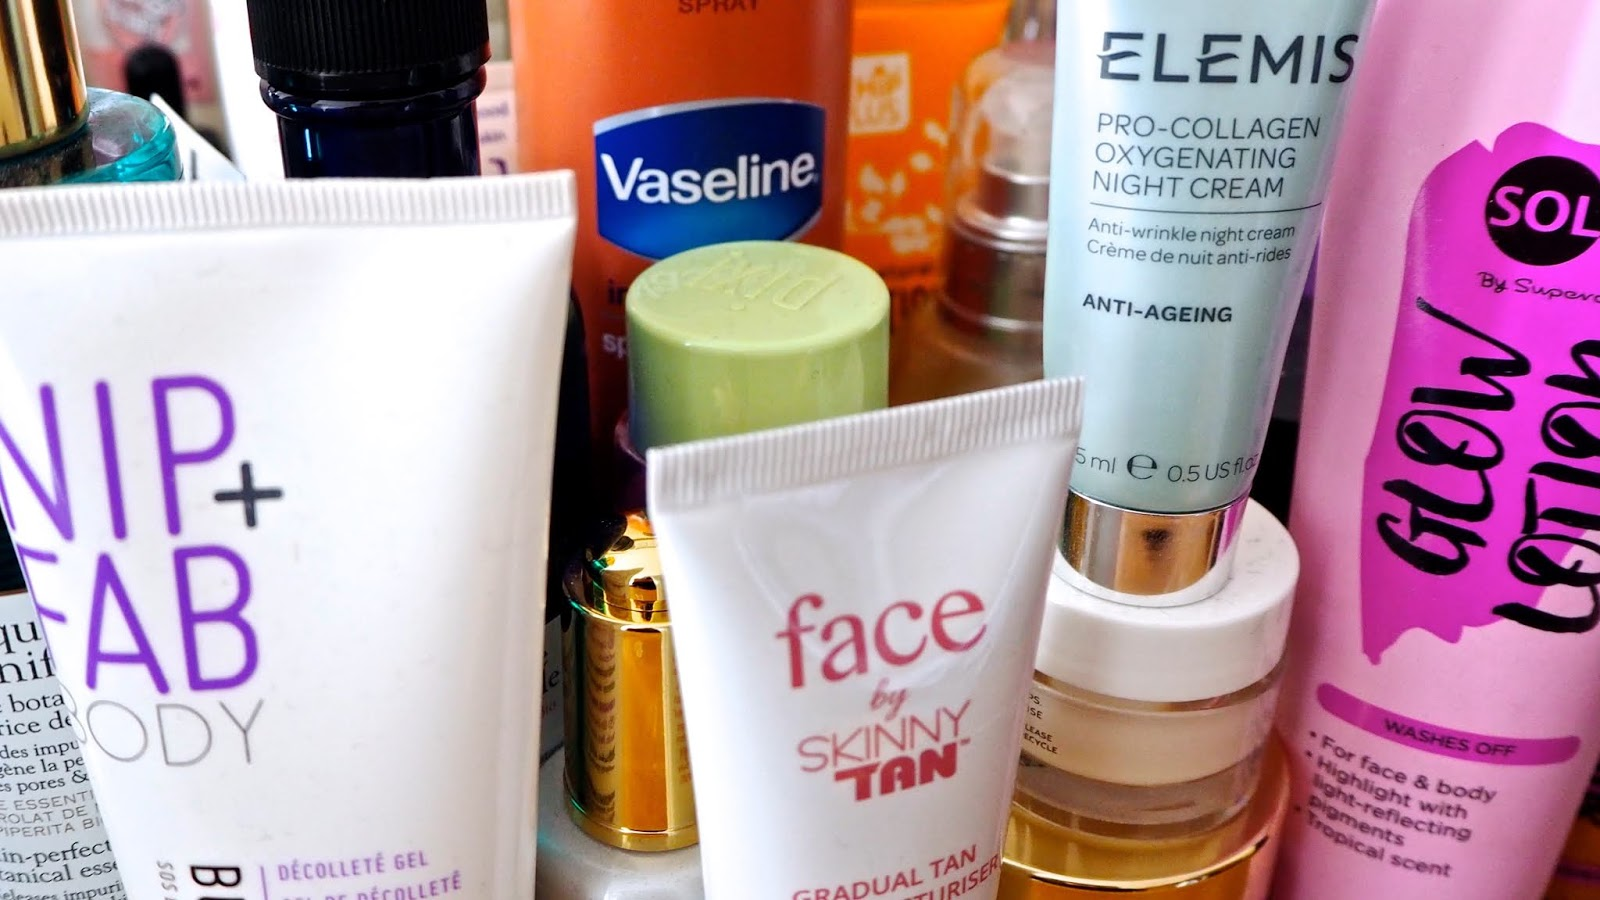 20 Under £20 - Beauty Products I Love